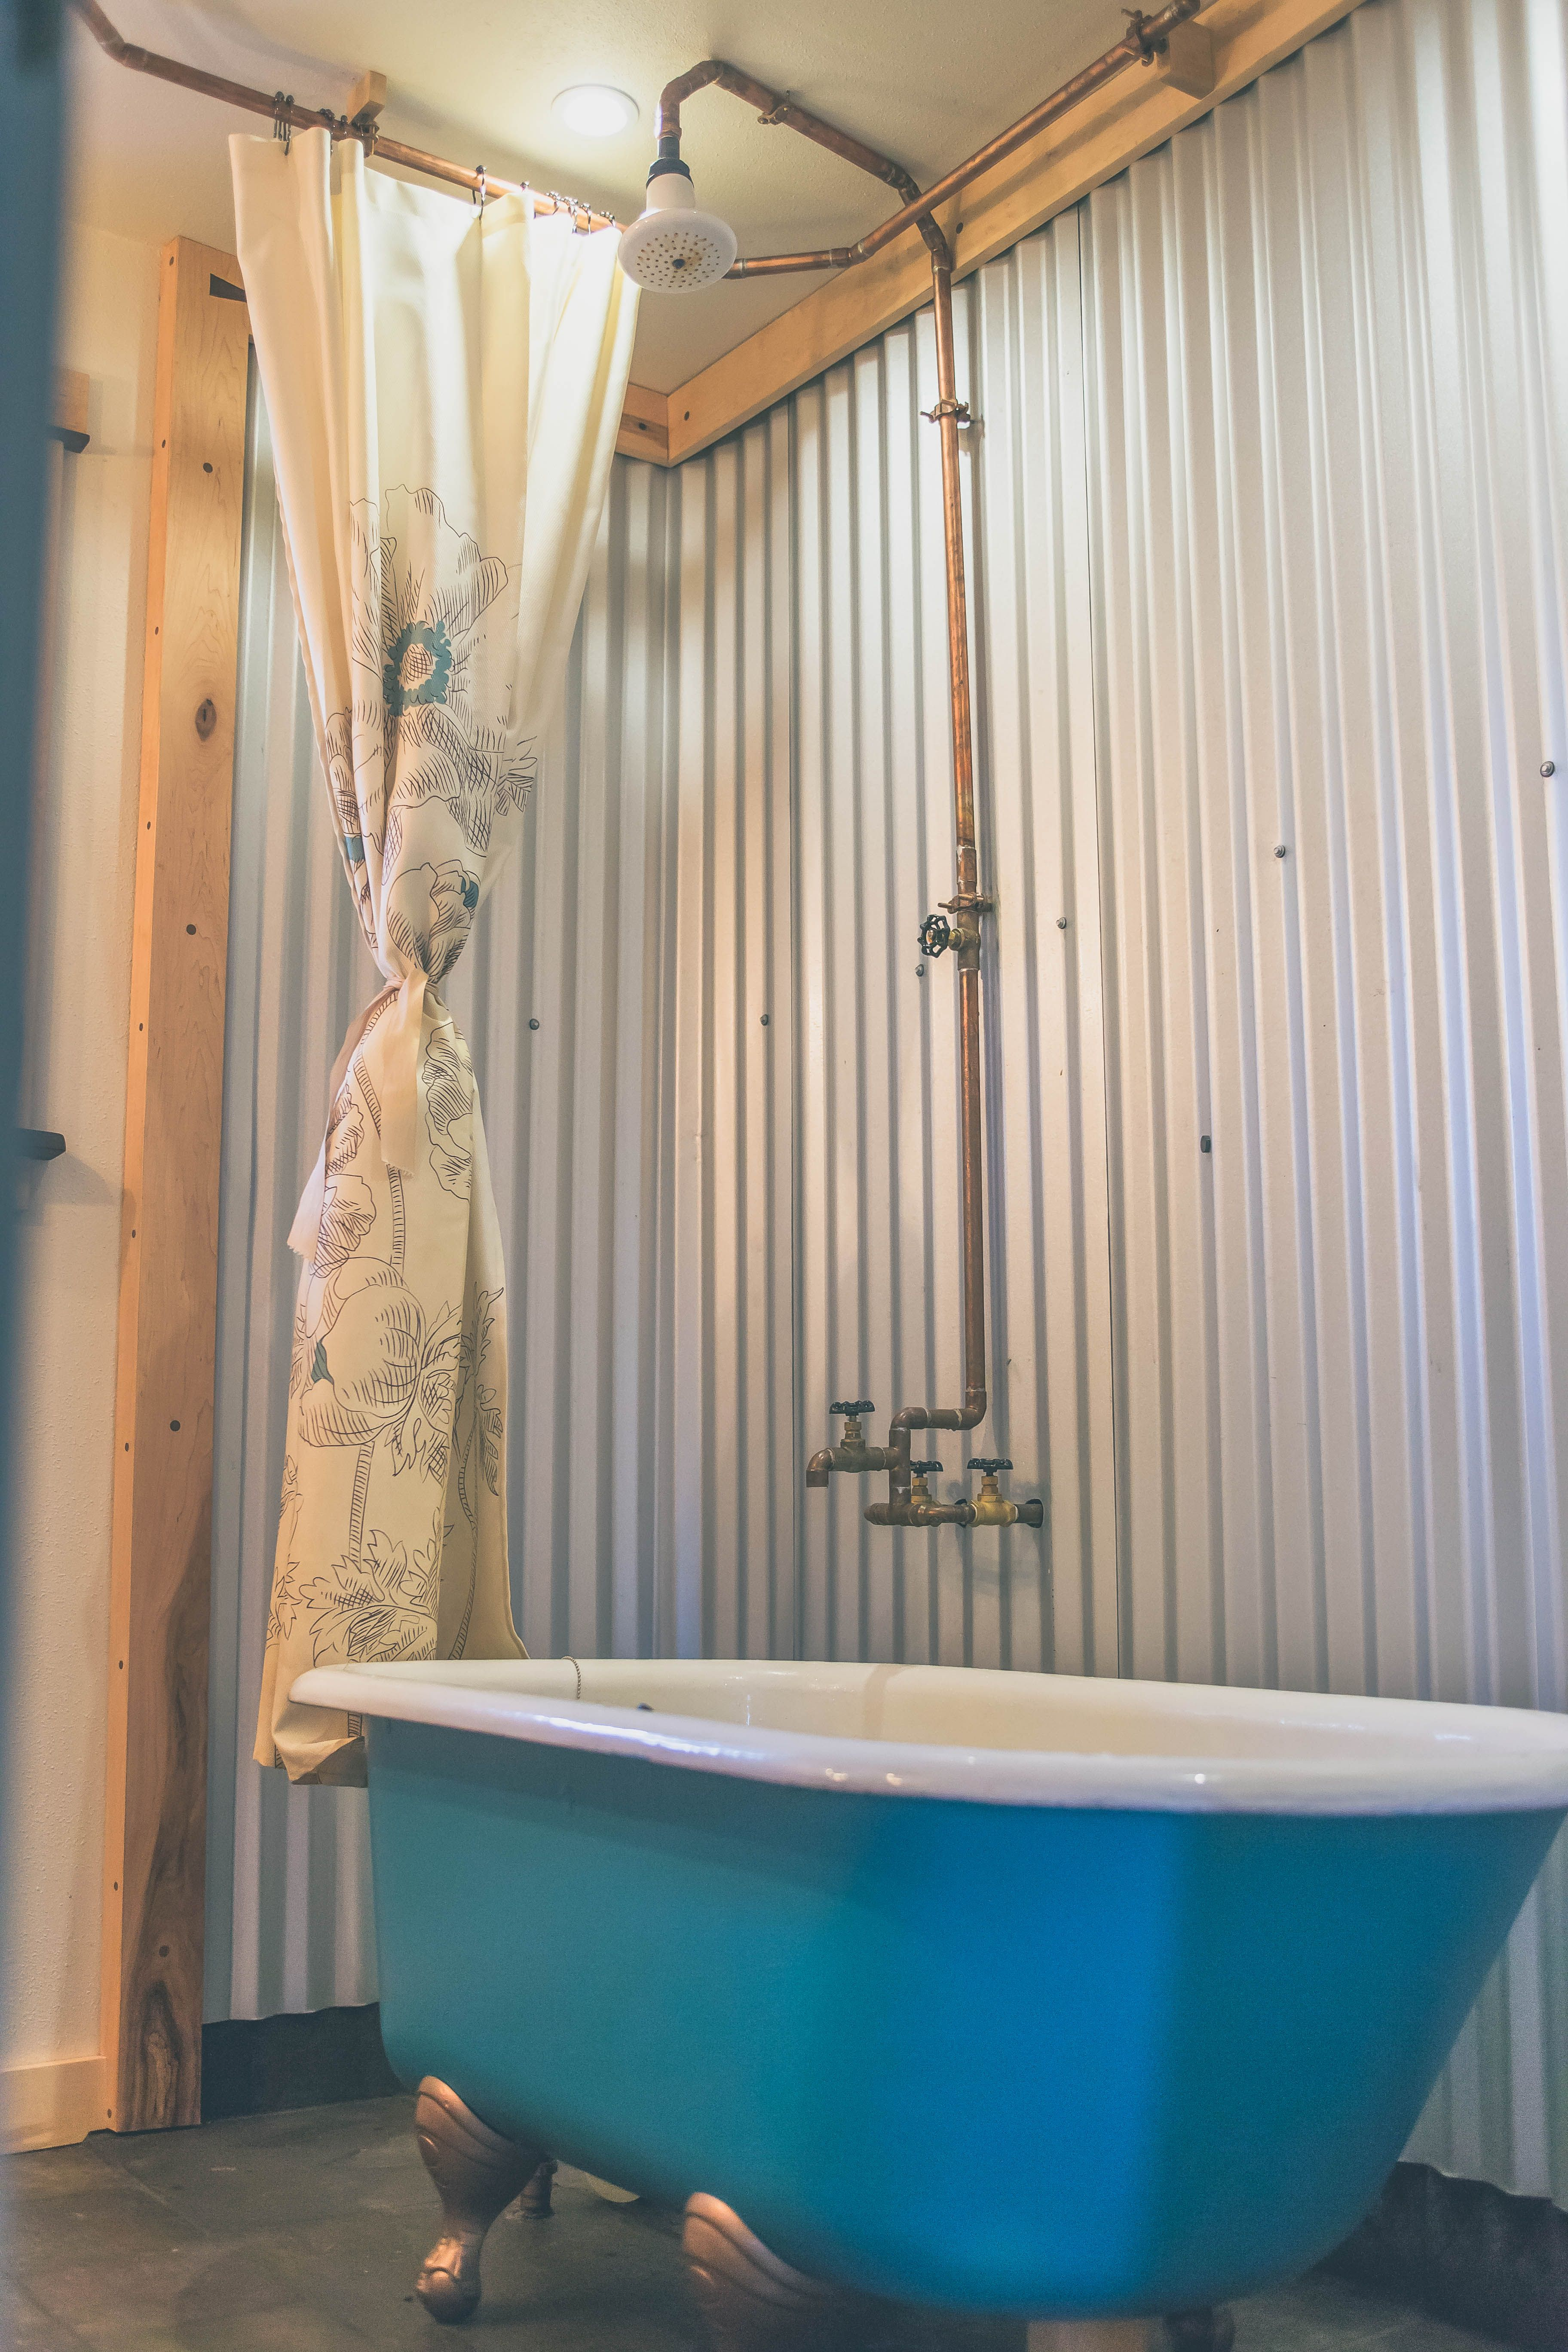 Industrial Outdoor Shower Industrial Claw Foot Tub And Shower Shabby Chic Meets